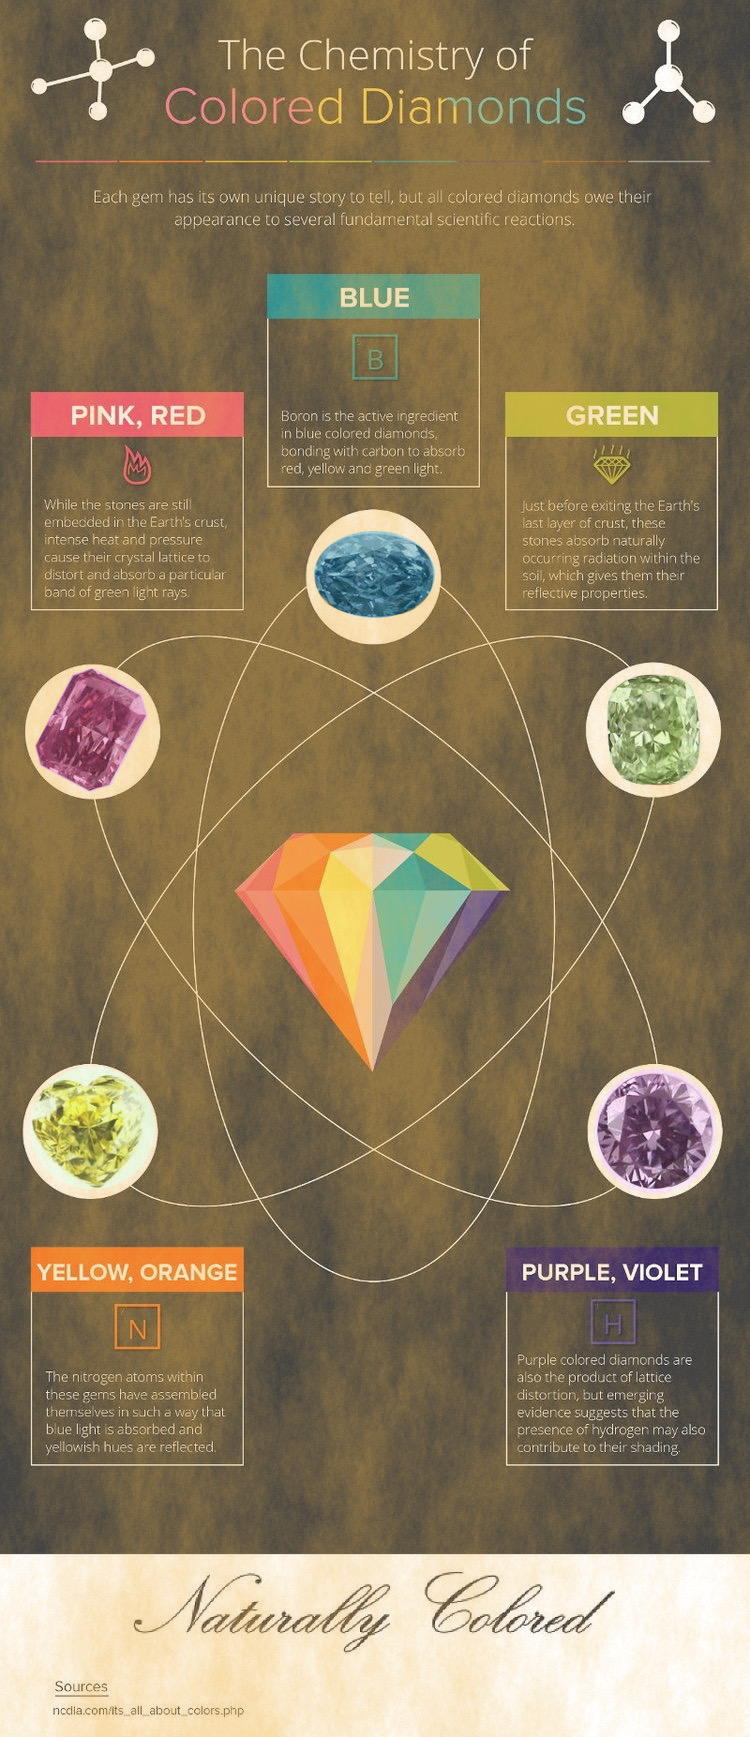 colordiamonds1.JPG